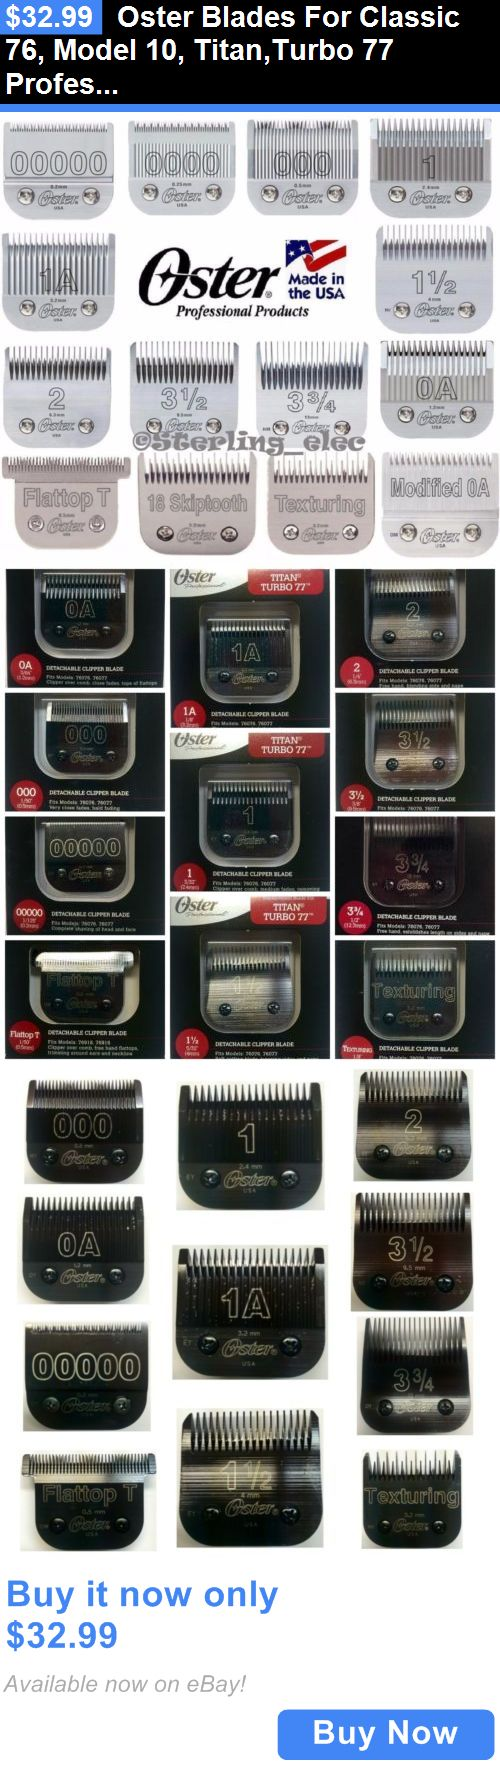 Clippers and Trimmers: Oster Blades For Classic 76, Model 10, Titan,Turbo 77 Professional Hair Clippers BUY IT NOW ONLY: $32.99